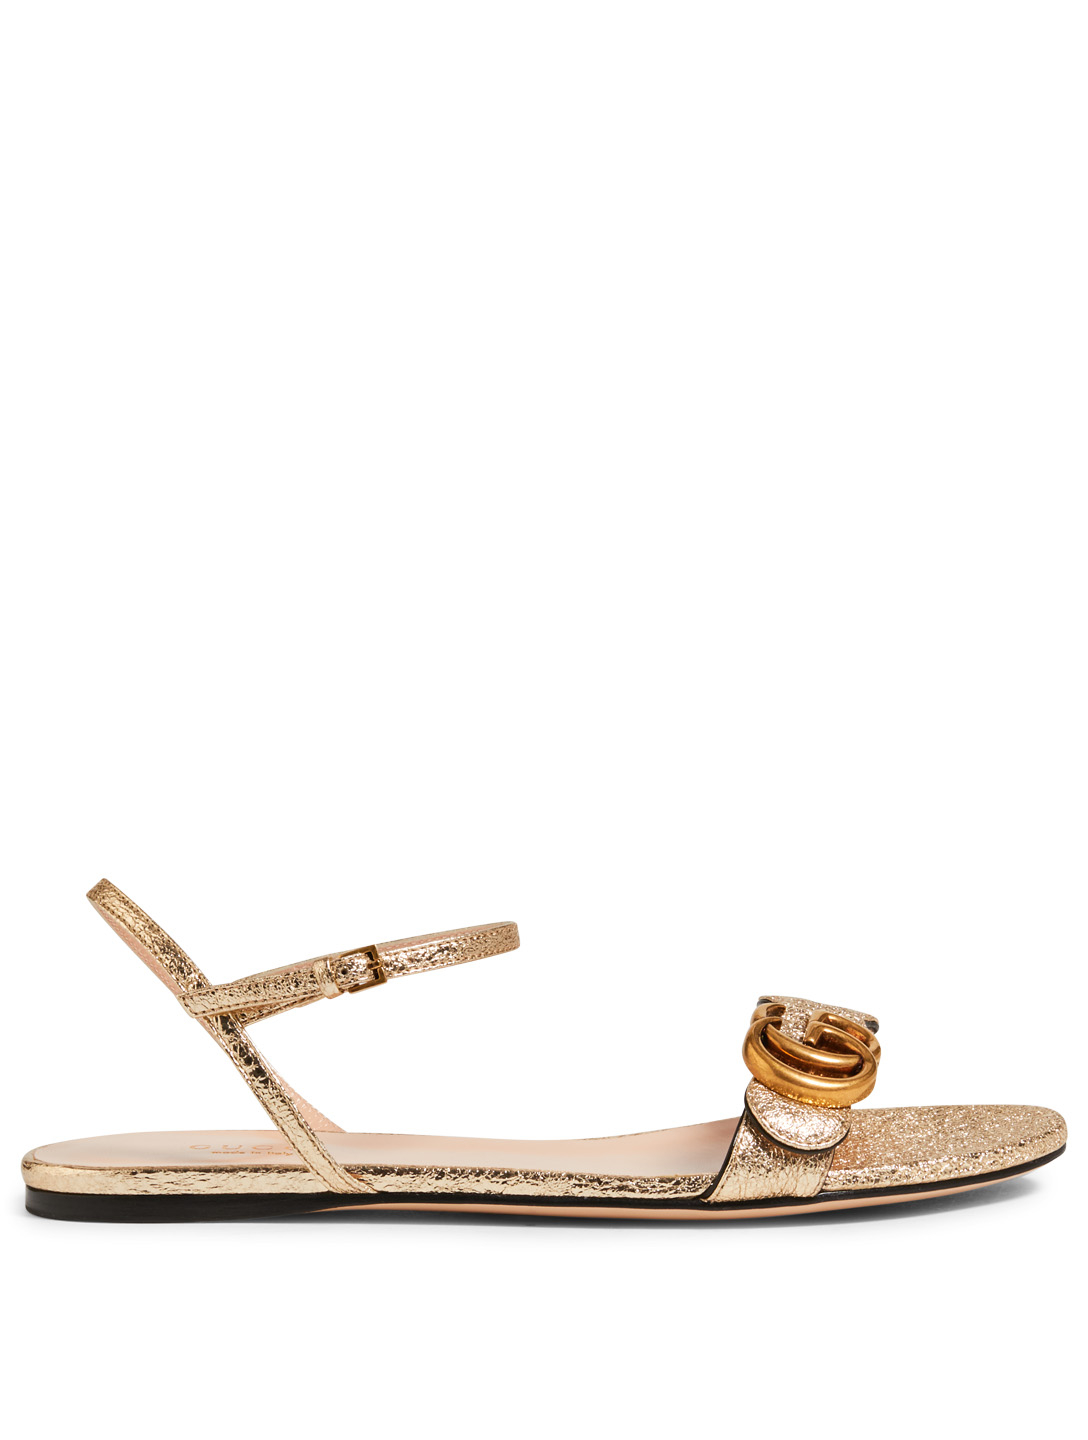 287913776e0 GUCCI Marmont Metallic Leather Sandals